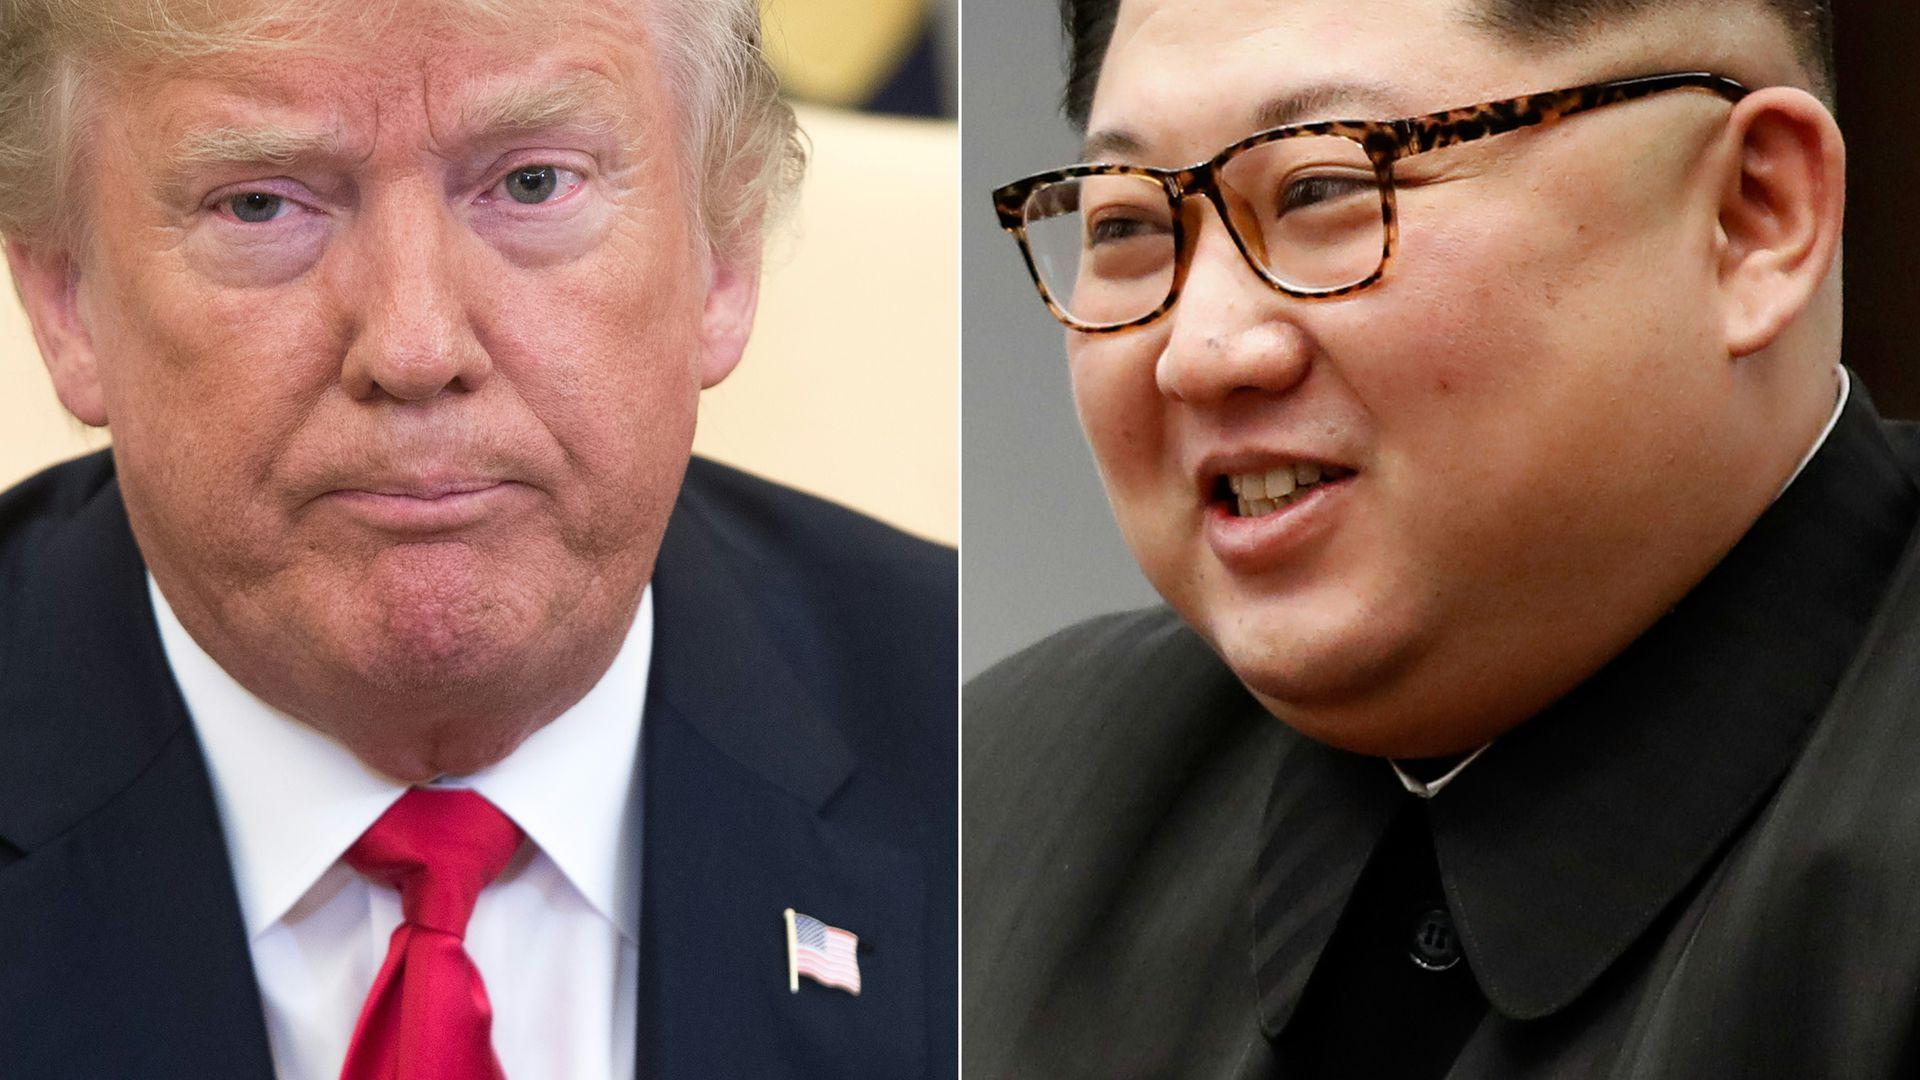 Donald Trump in the Oval Office on May 17, 2018, and Kim Jong-un during the inter-Korean summit in Panmunjom on April 27, 2018.